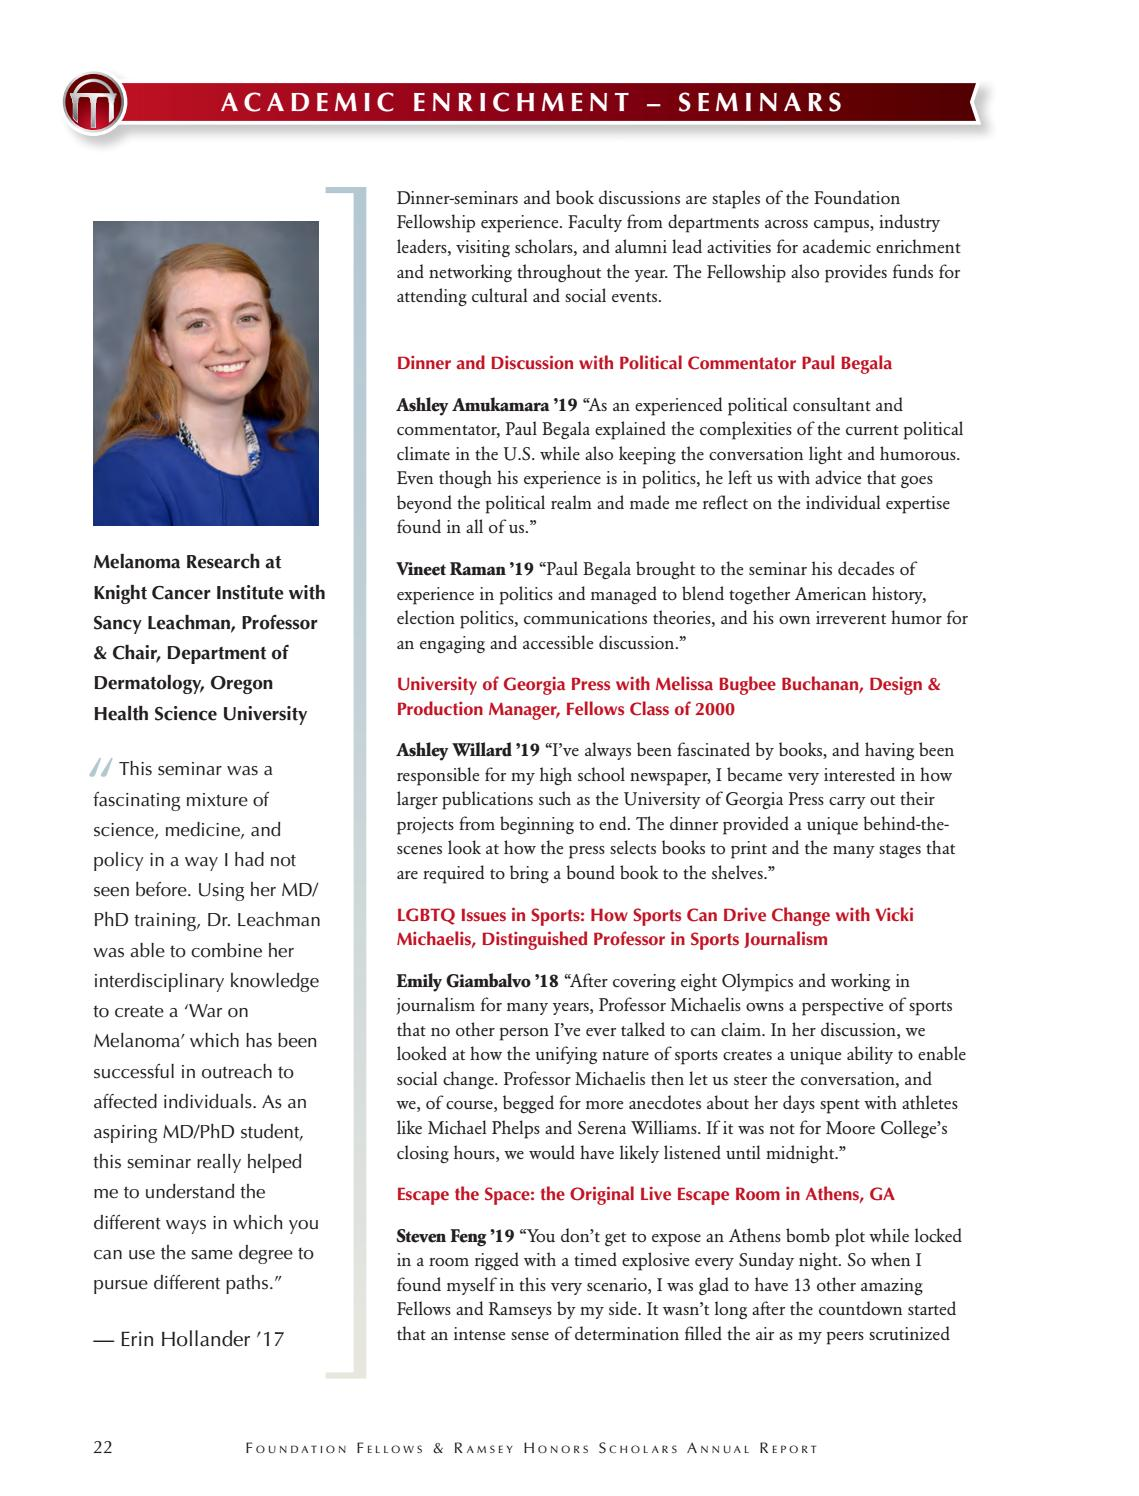 740ce0e2 Foundation Fellows Annual Report, 2015-2016 by UGA Honors Program ...